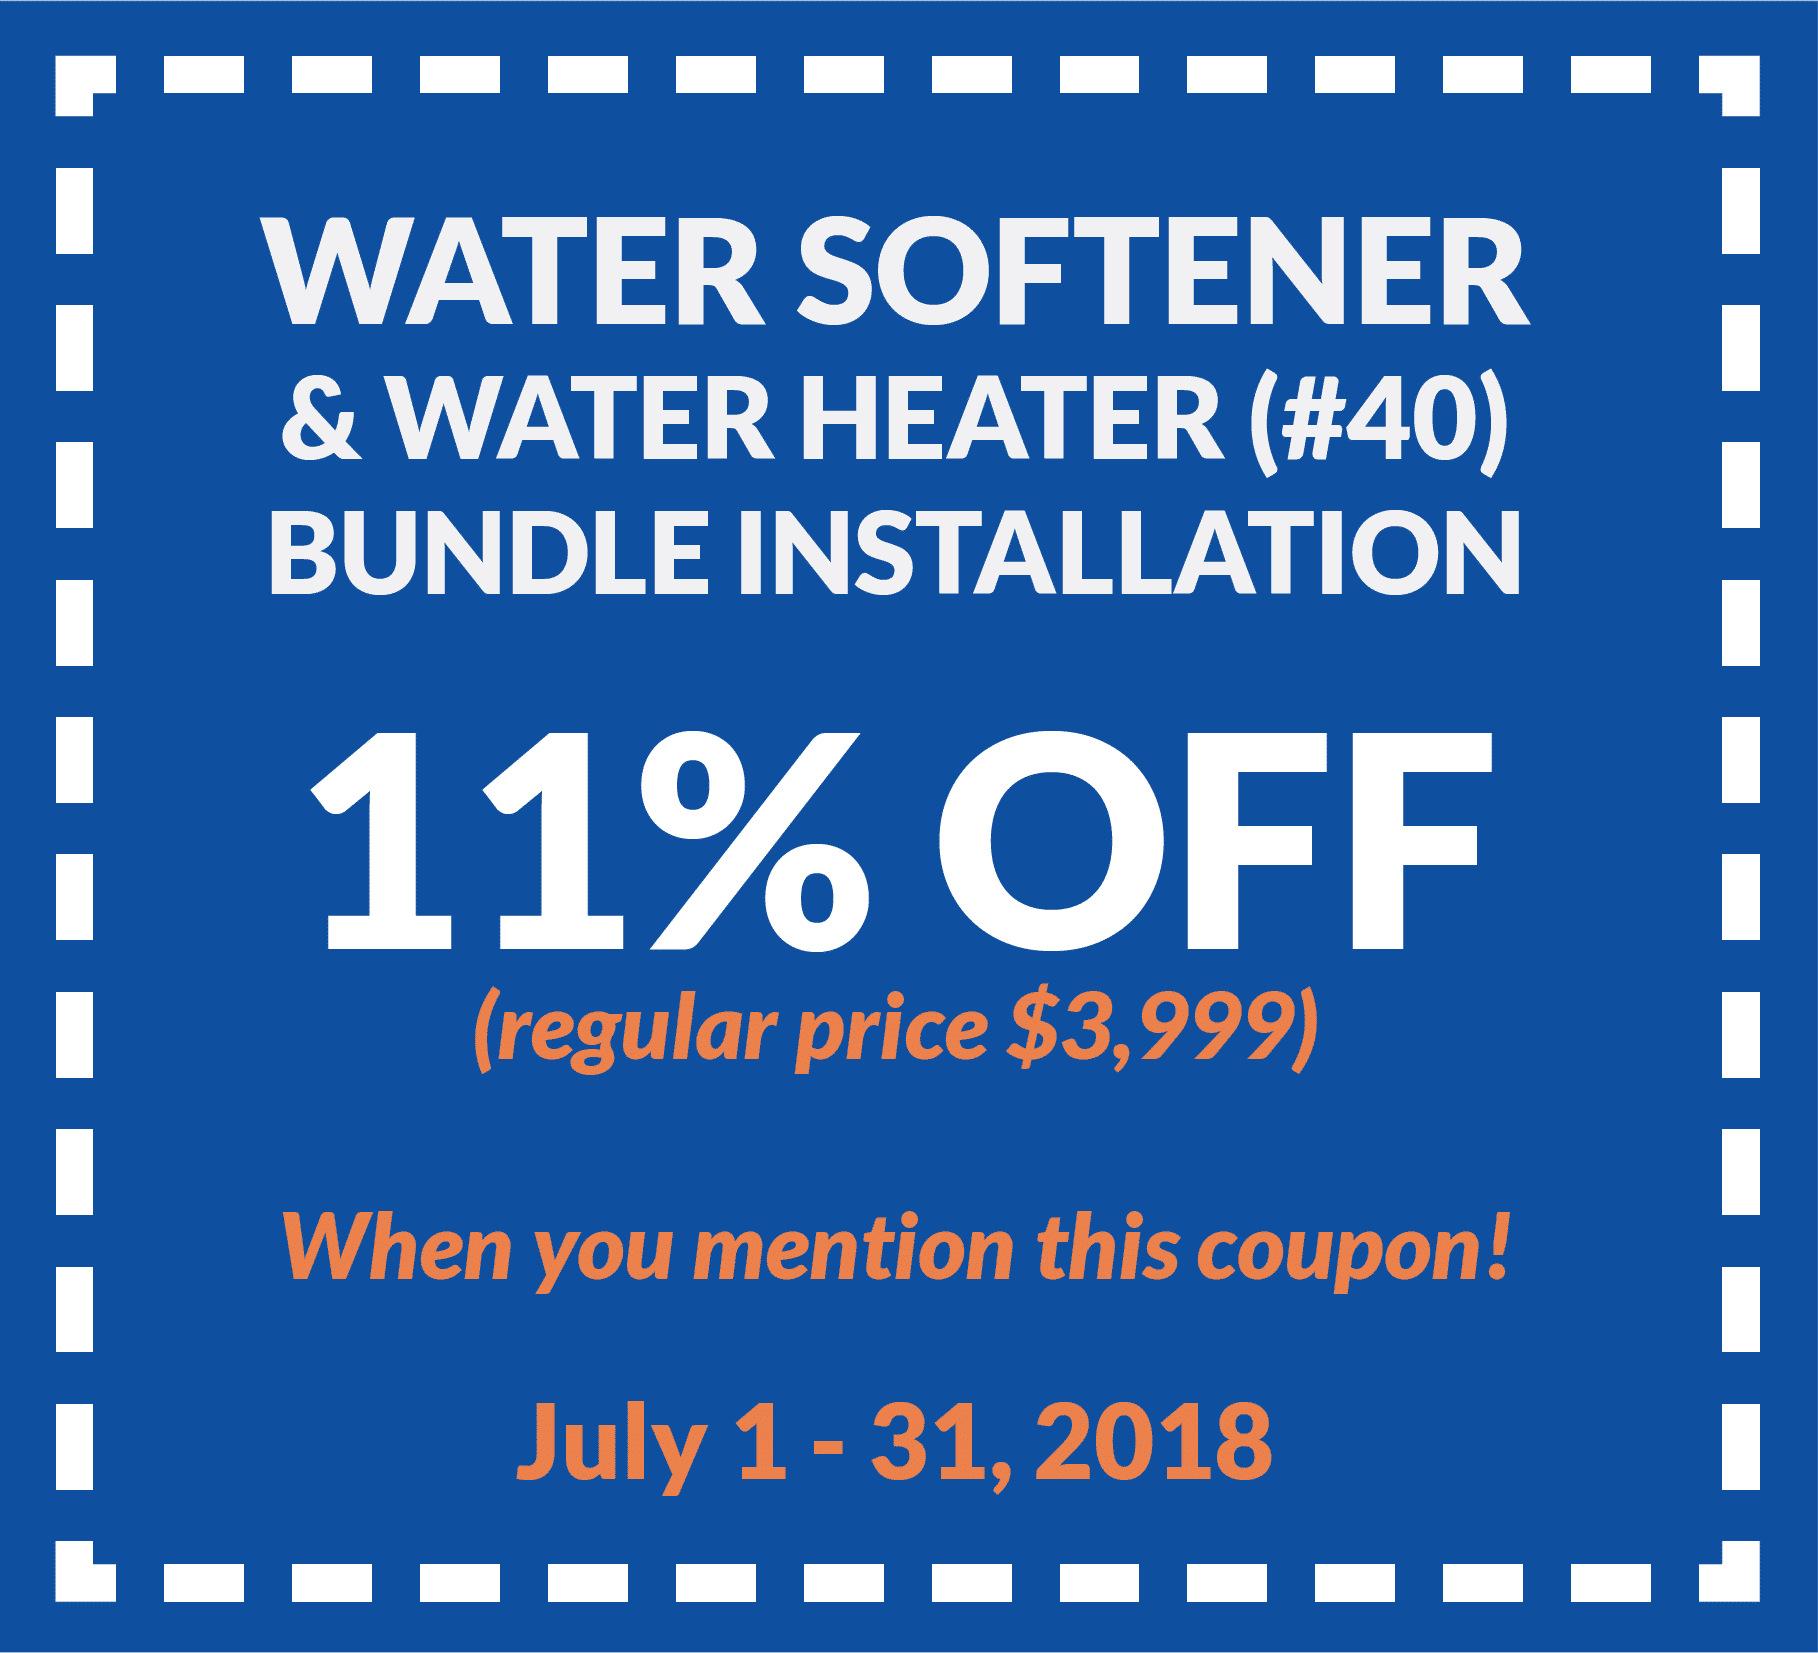 Coupon for water softener and water heater (#40) bundle installation for 11% off regular price ($3,999). Valid from July 1 to 31, 2018.